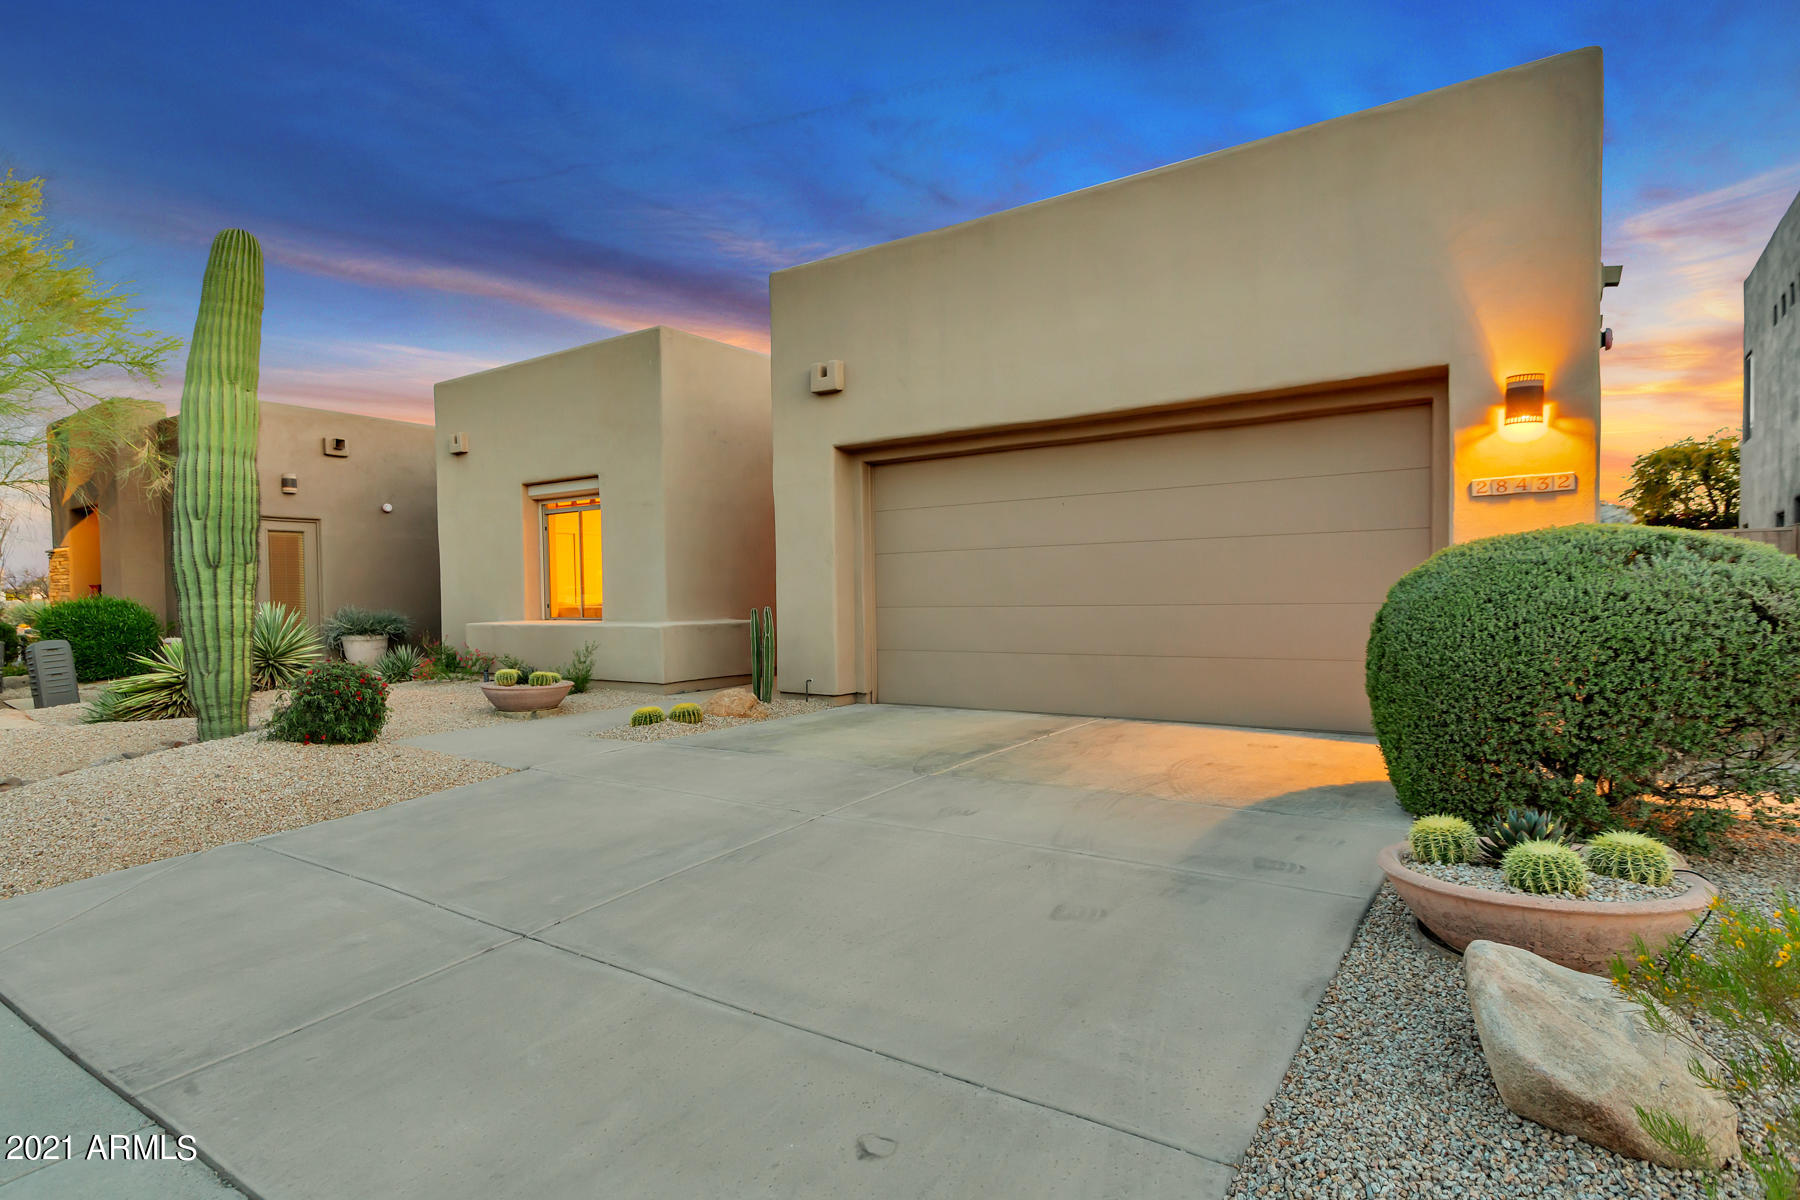 28432 N 108TH Way, Scottsdale, AZ 85262, 2 Bedrooms Bedrooms, ,Residential Lease,For Rent,28432 N 108TH Way,6230976